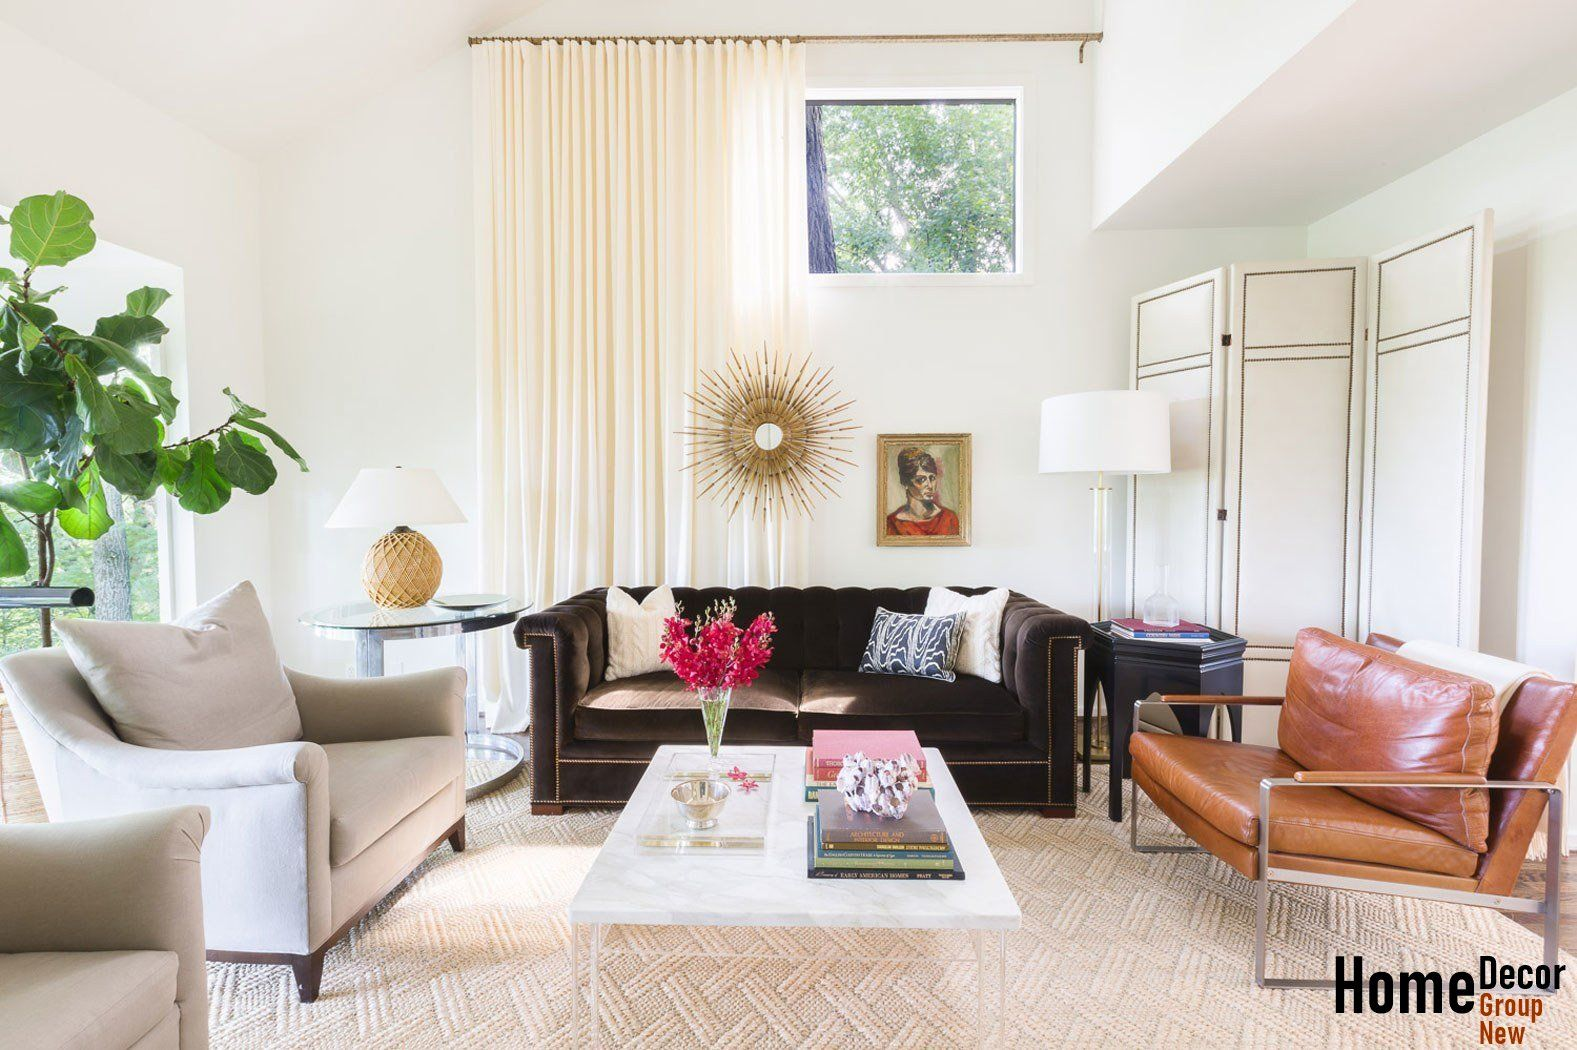 An Amazing Before and After Living Room Renovation | Architectural ...